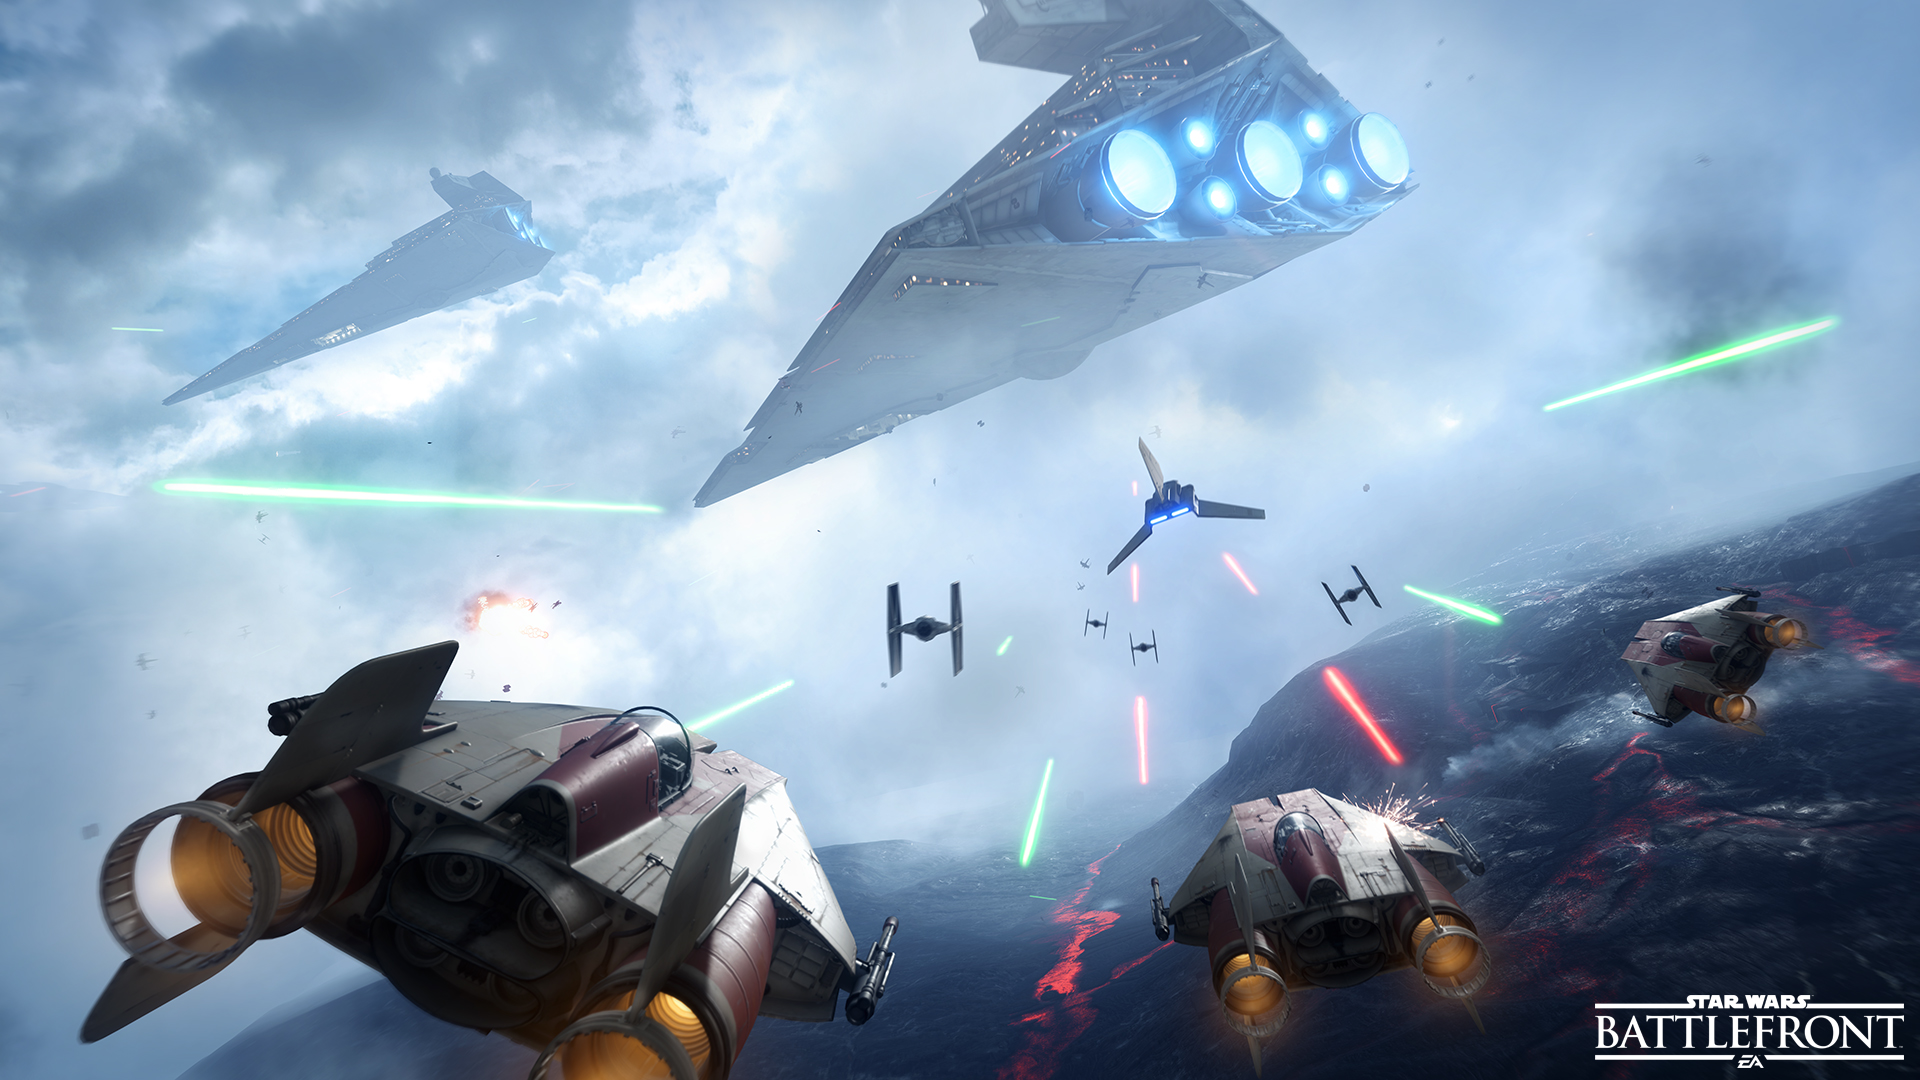 2916874-star_wars_battlefront_-_fighter_squadron_-_a_wing_vs_imperial_shuttle___final_for_release